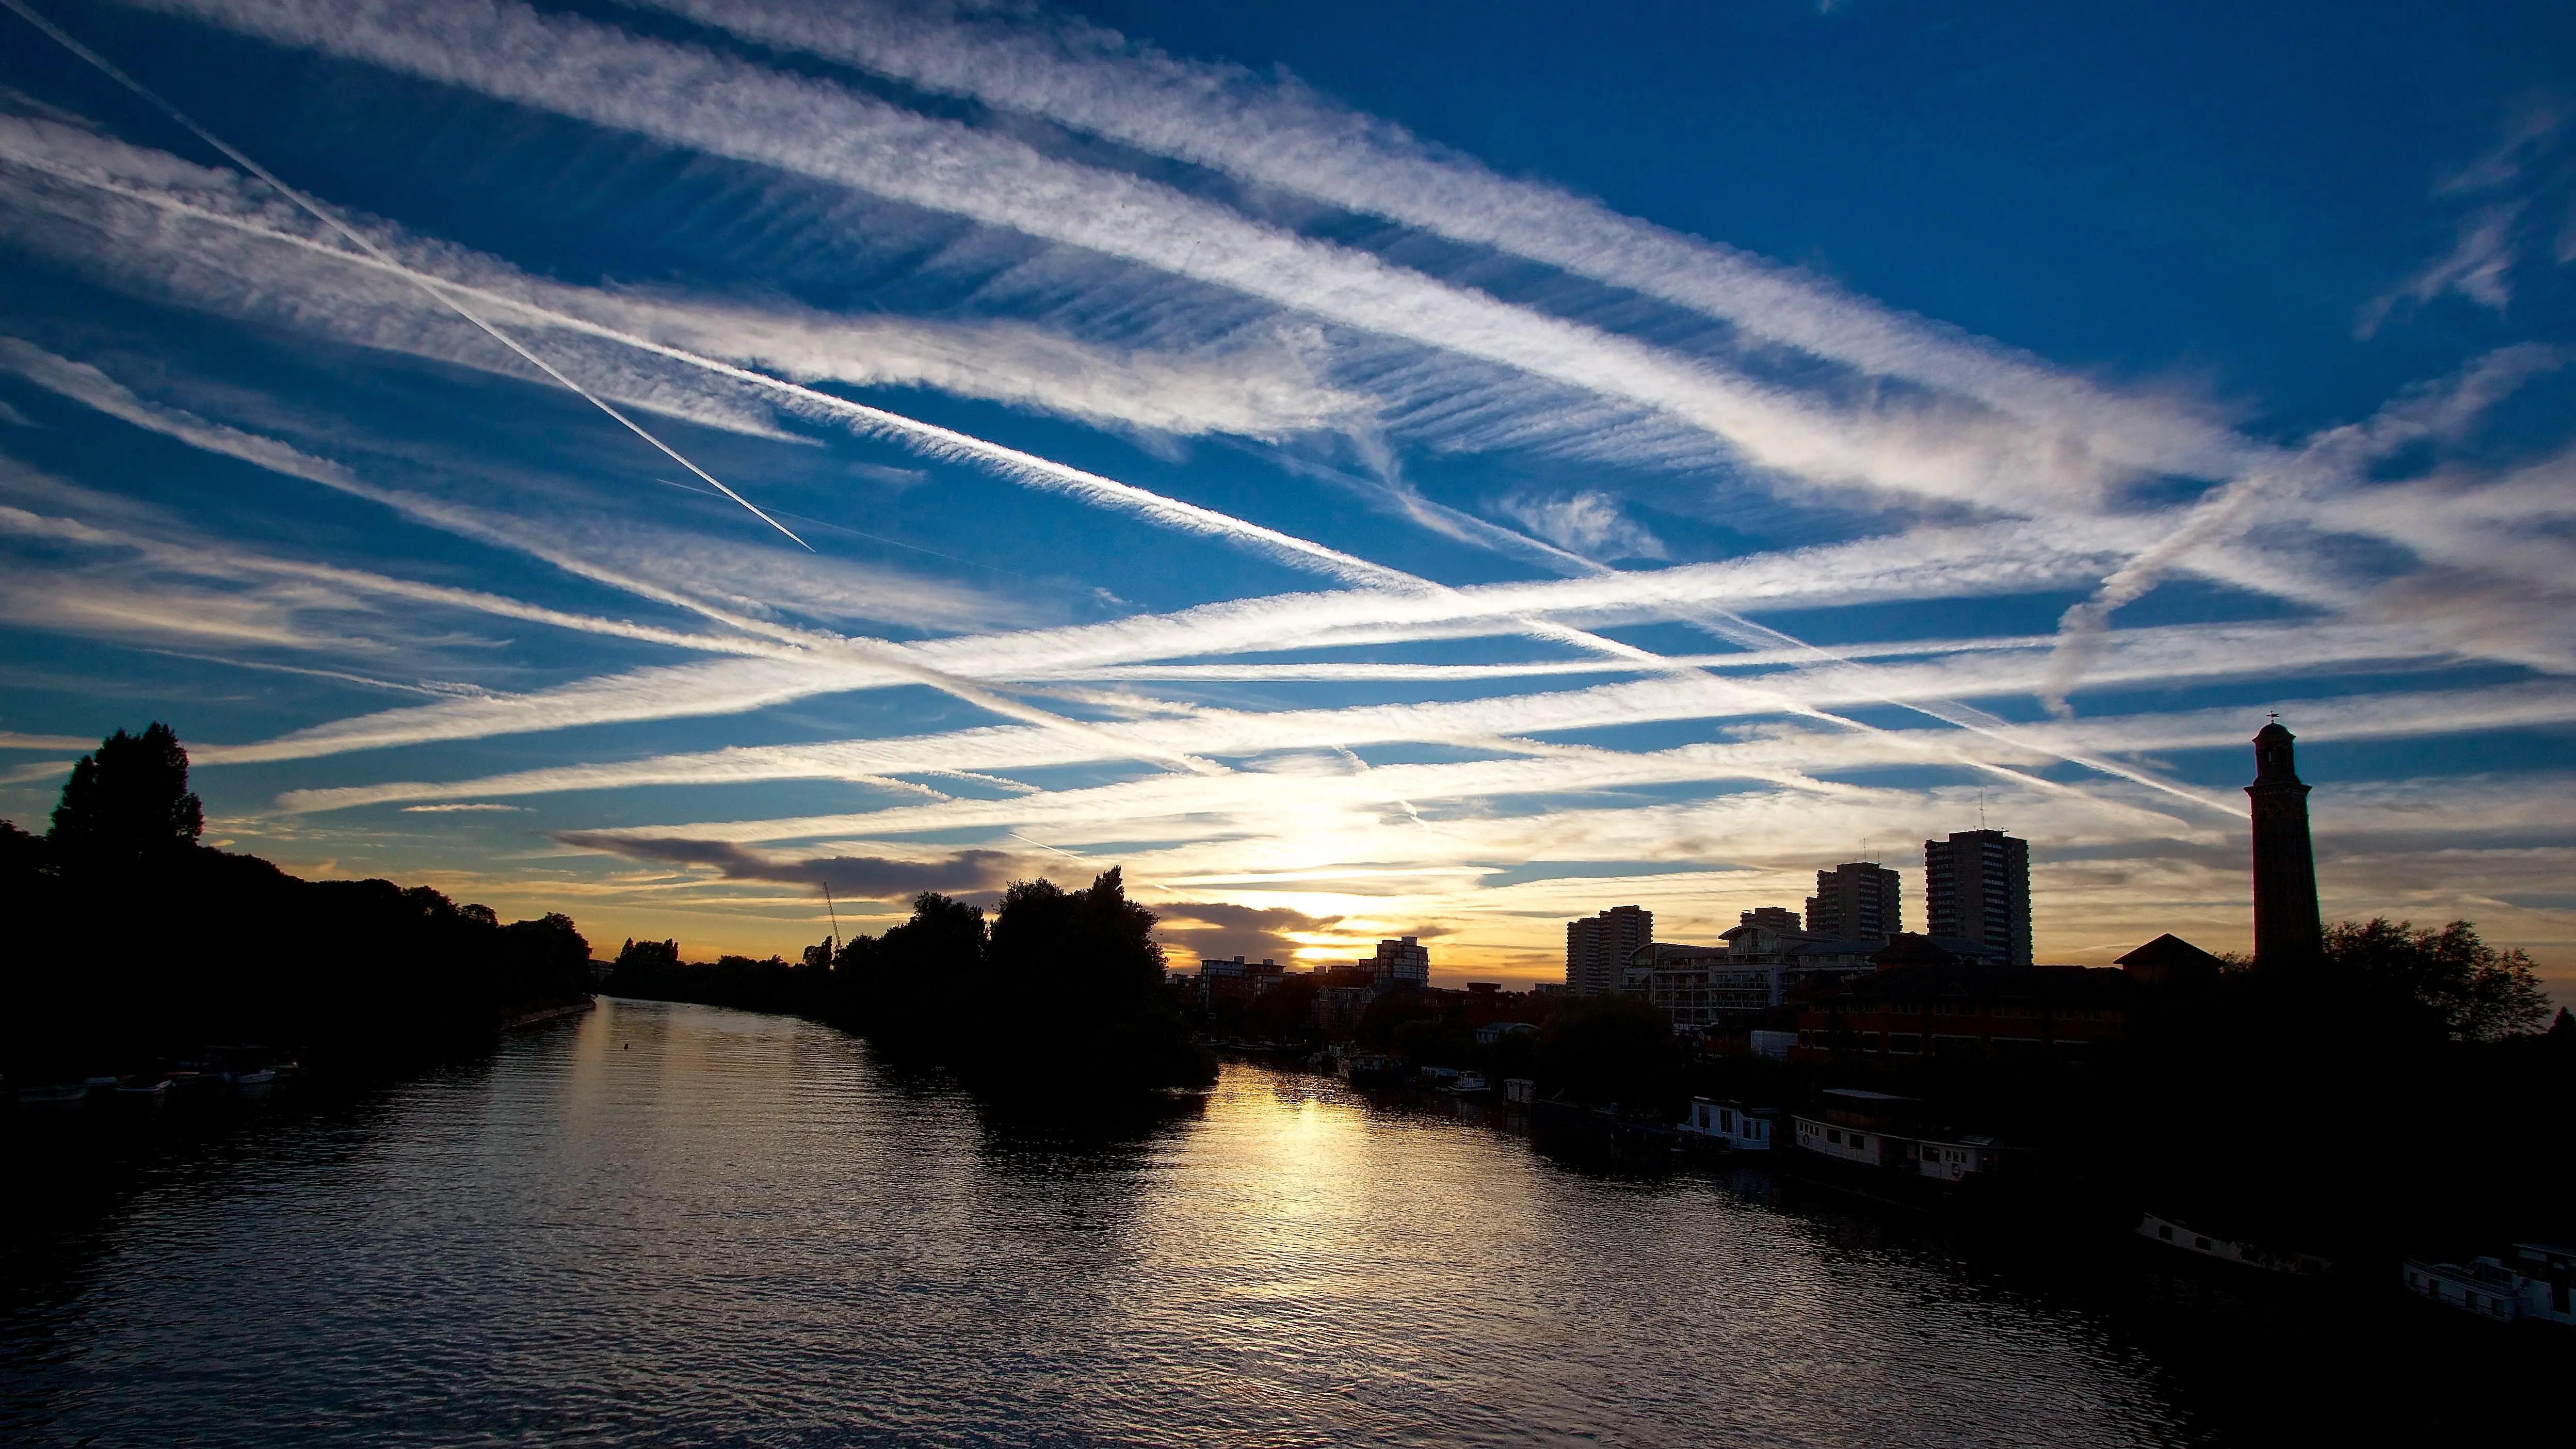 Globalized transportation networks, especially commercial aviation, are a major contributor of air pollution and greenhouse gas emissions, like the chem-trails seen here in the west London sky over the River Thames.